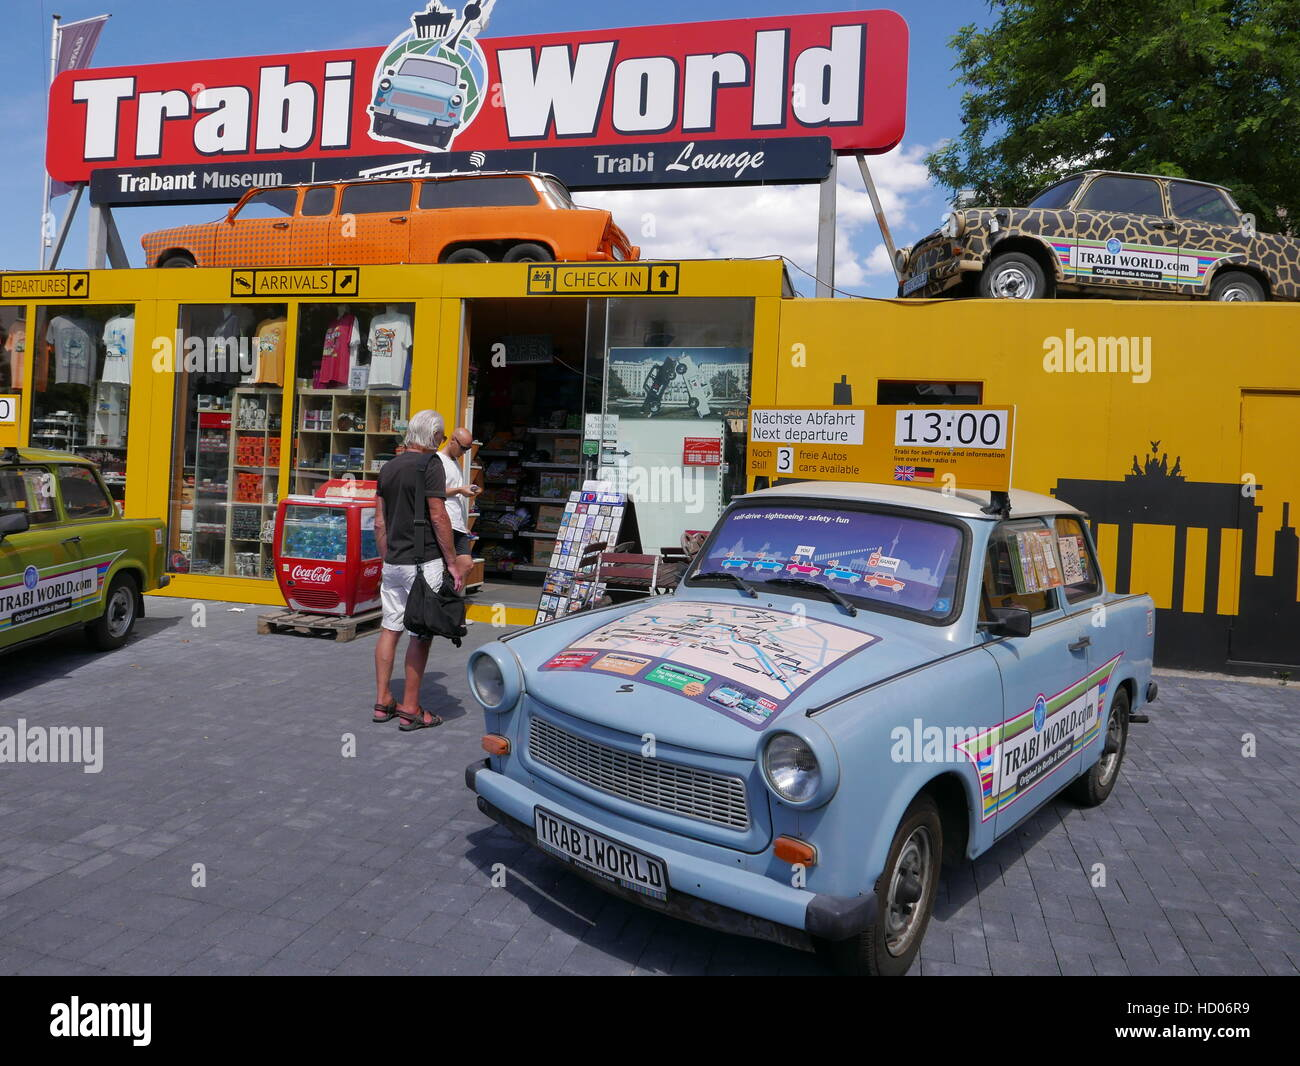 GERMANY - Berlin Trabi World, museum and rentals of the Trabant car ...